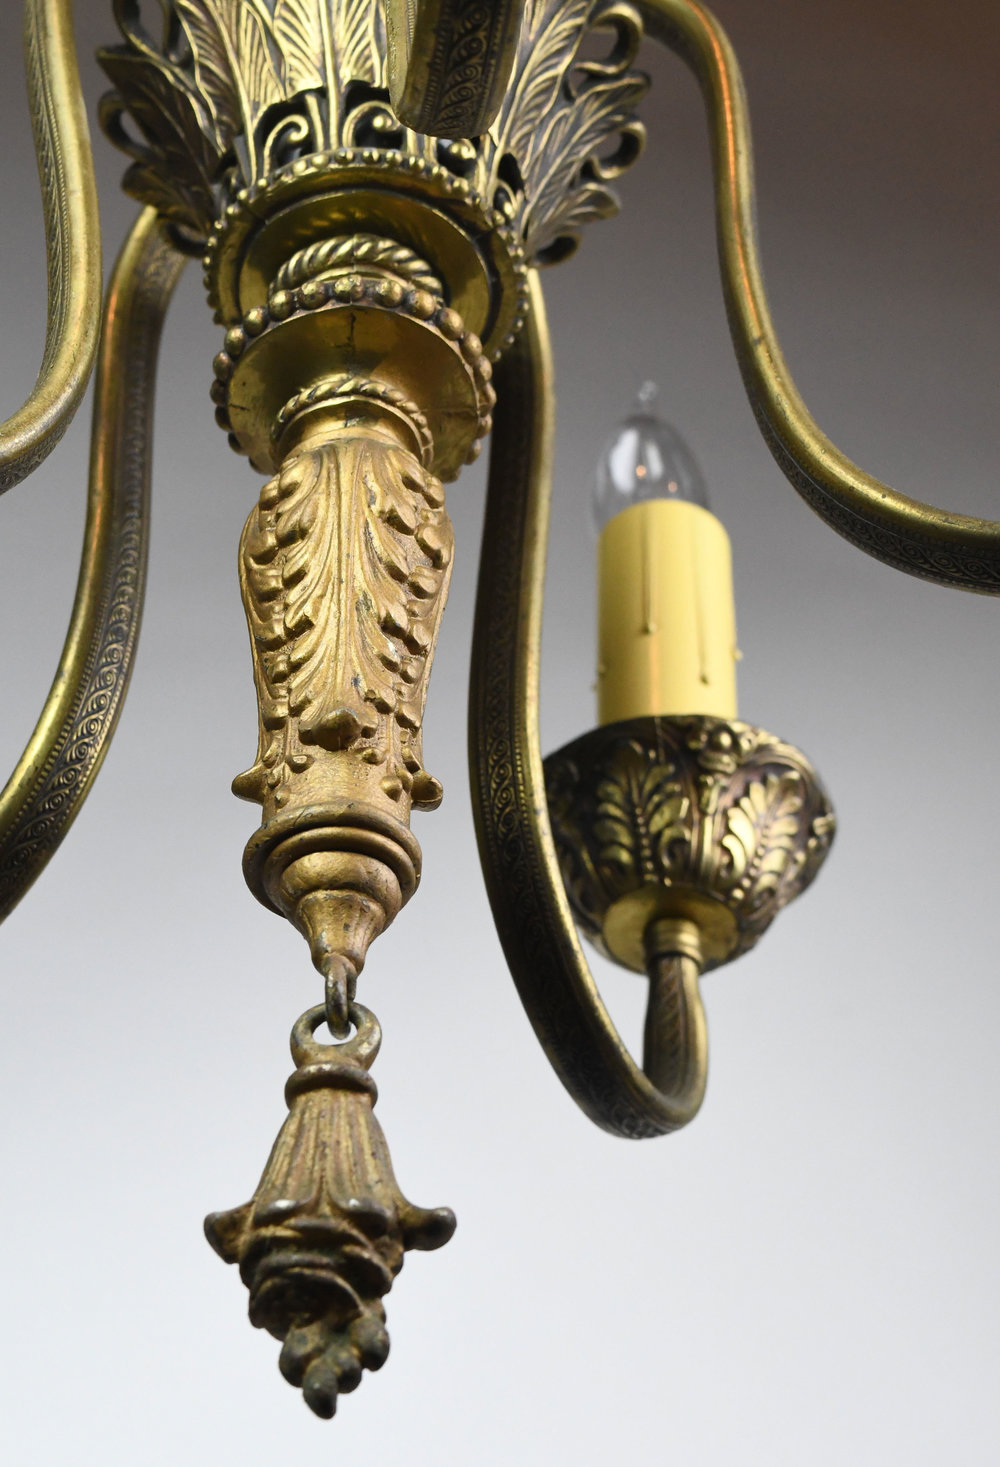 47432-five-candle-french-chandelier-pattern-detail.jpg